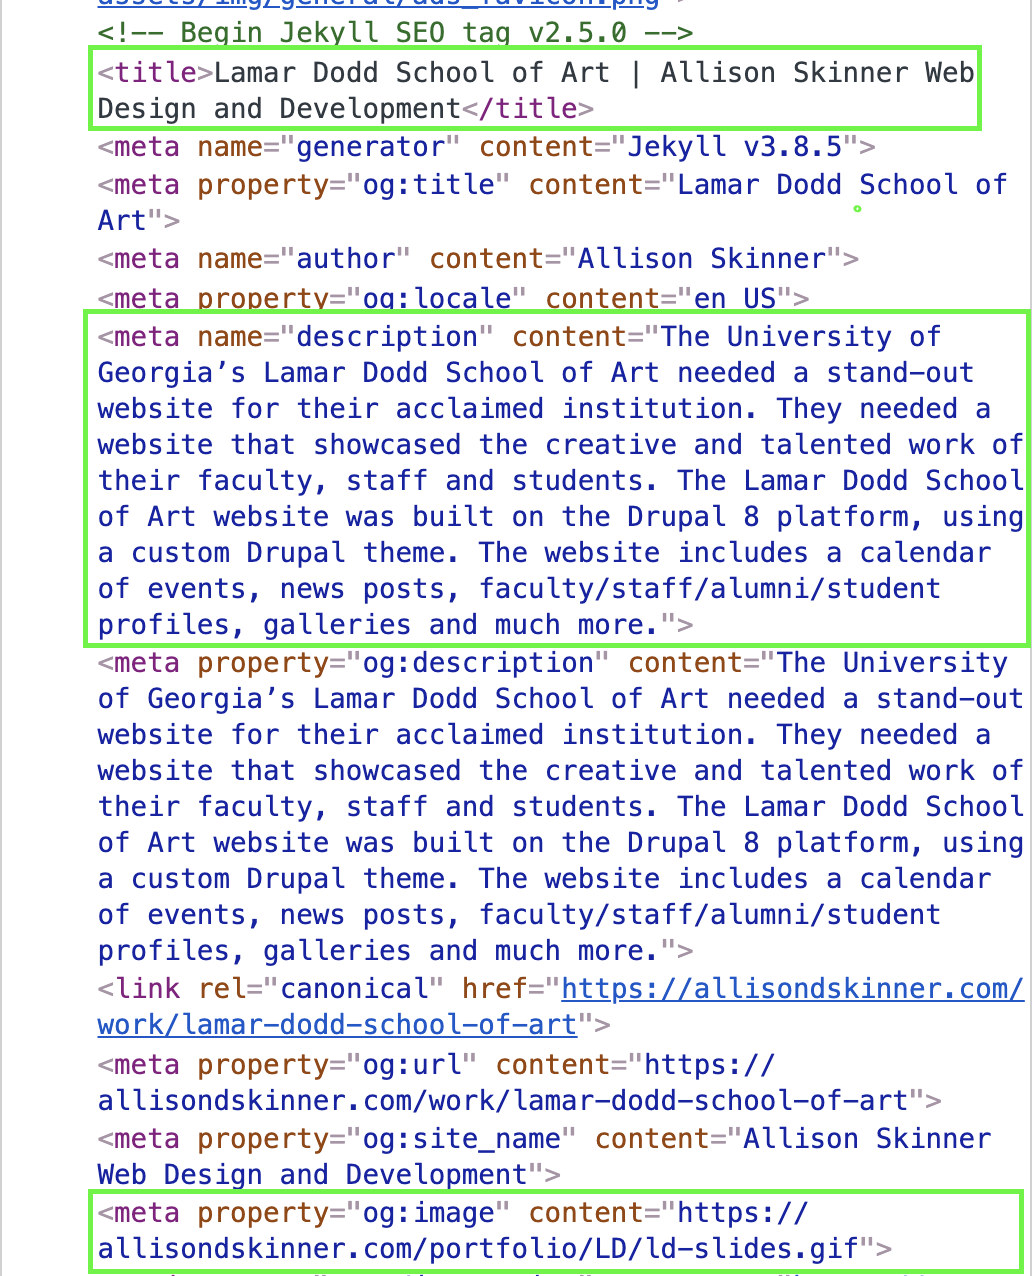 screenshot of meta information in the html head of my website. Includes site title and description